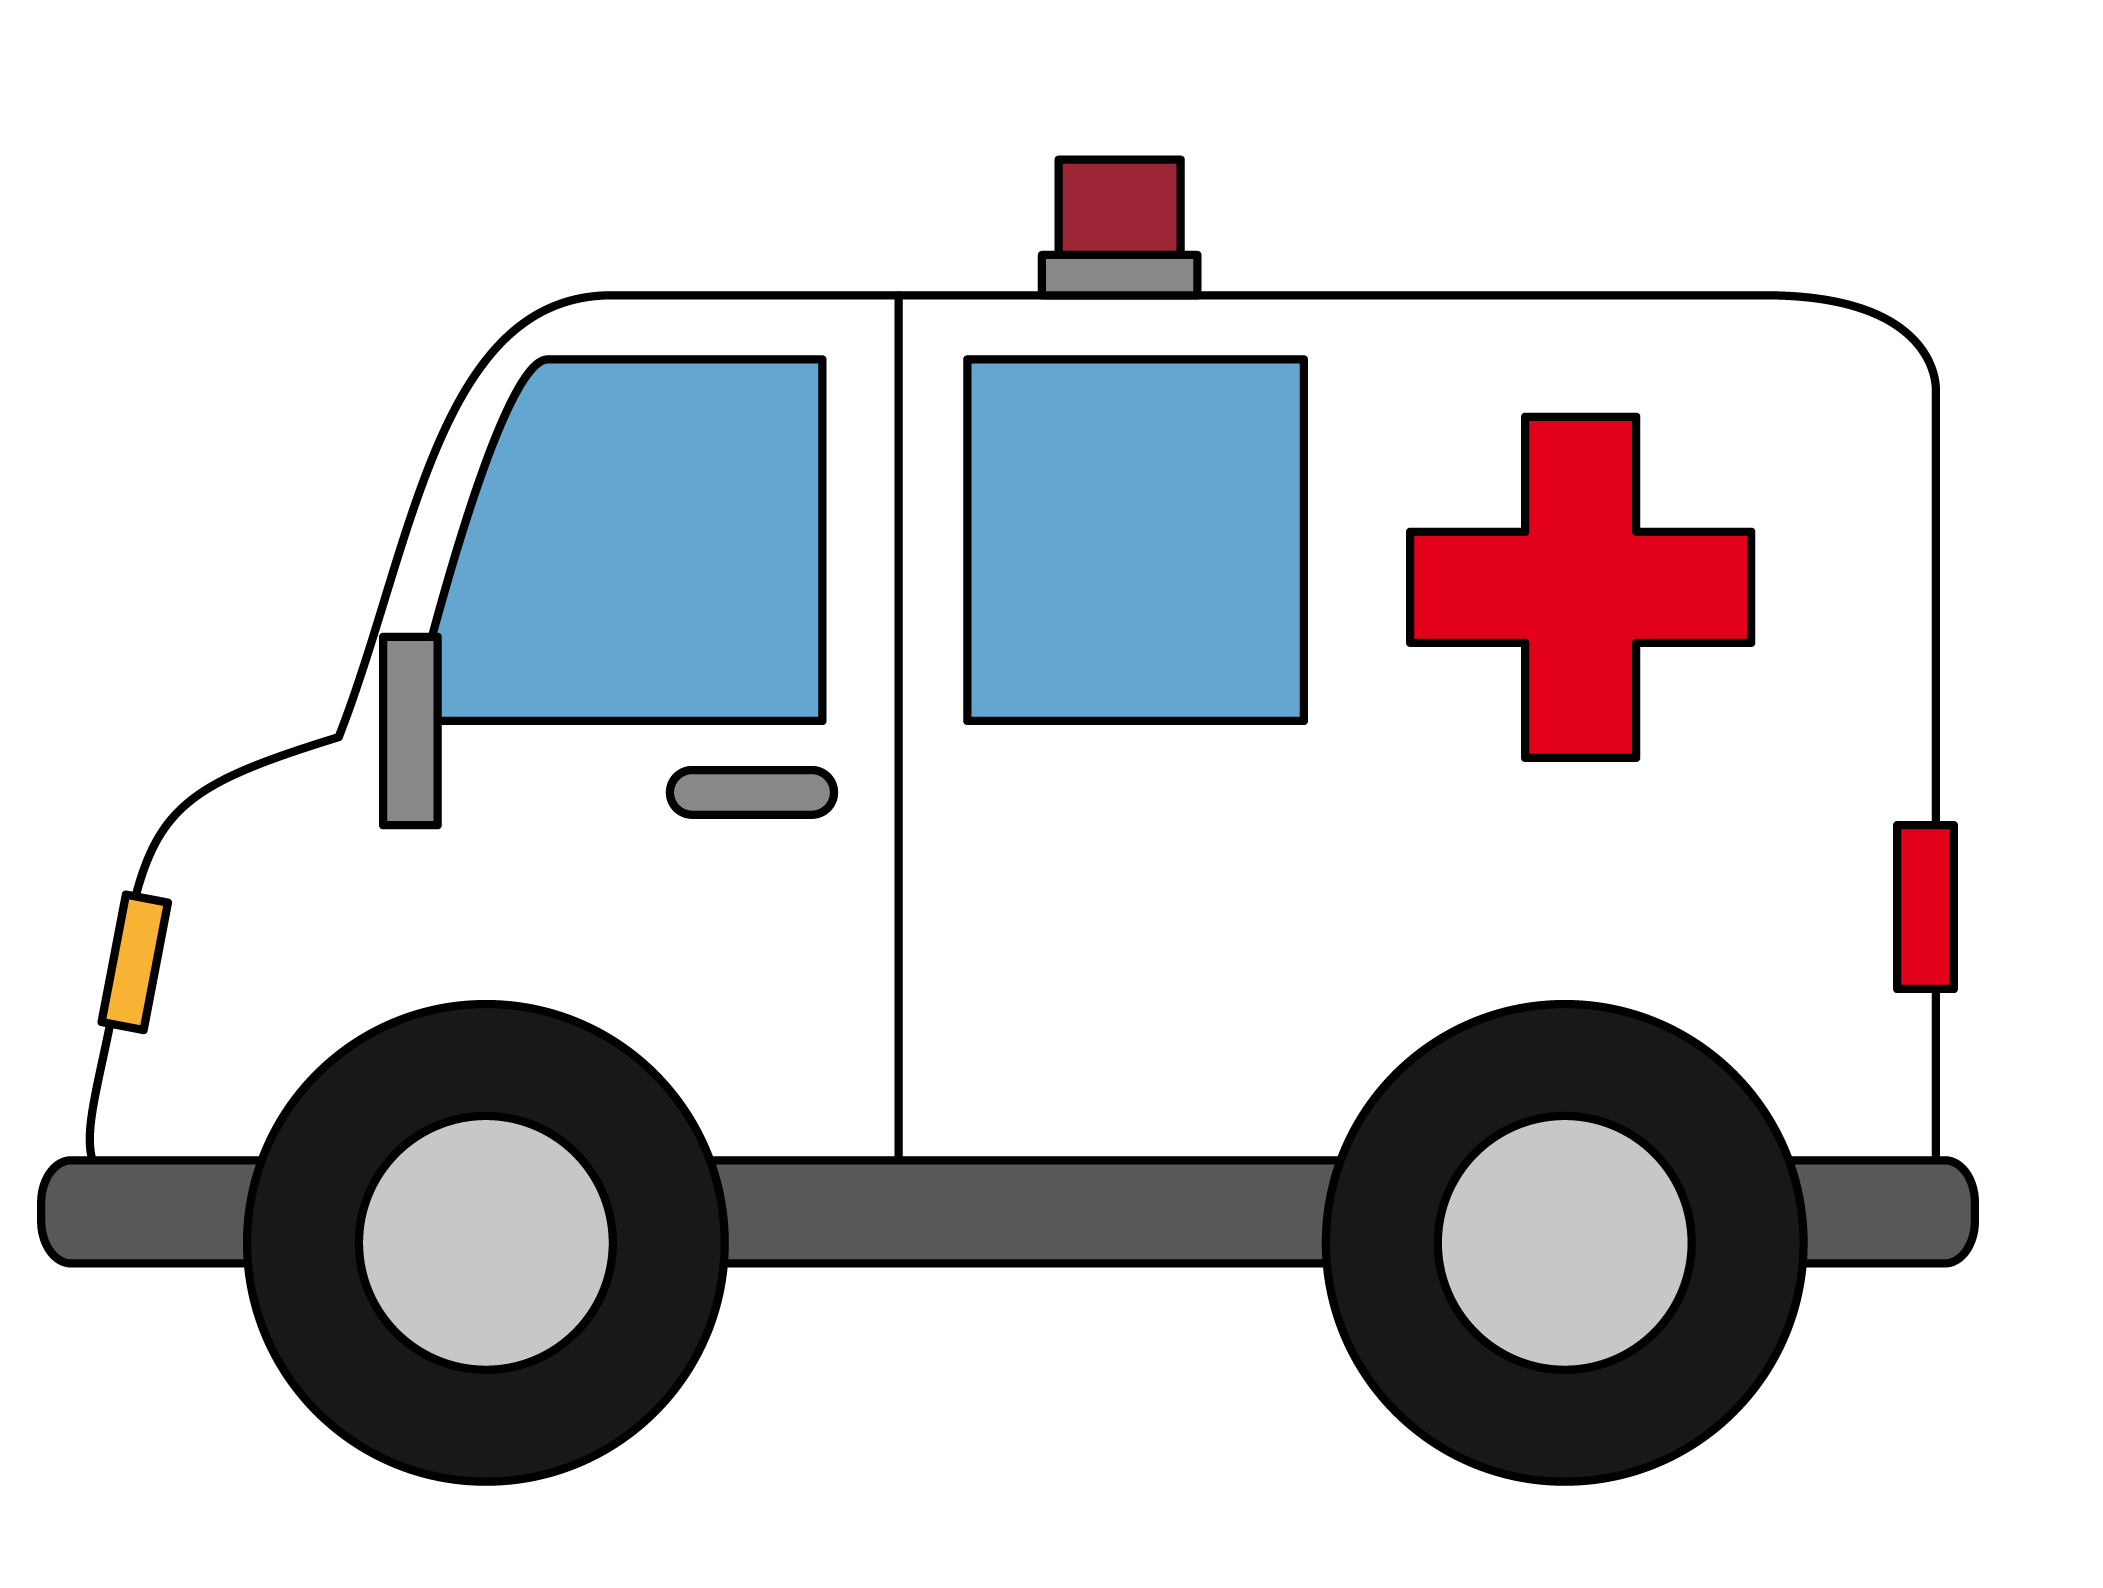 vector black and white download . Ambulance clipart.